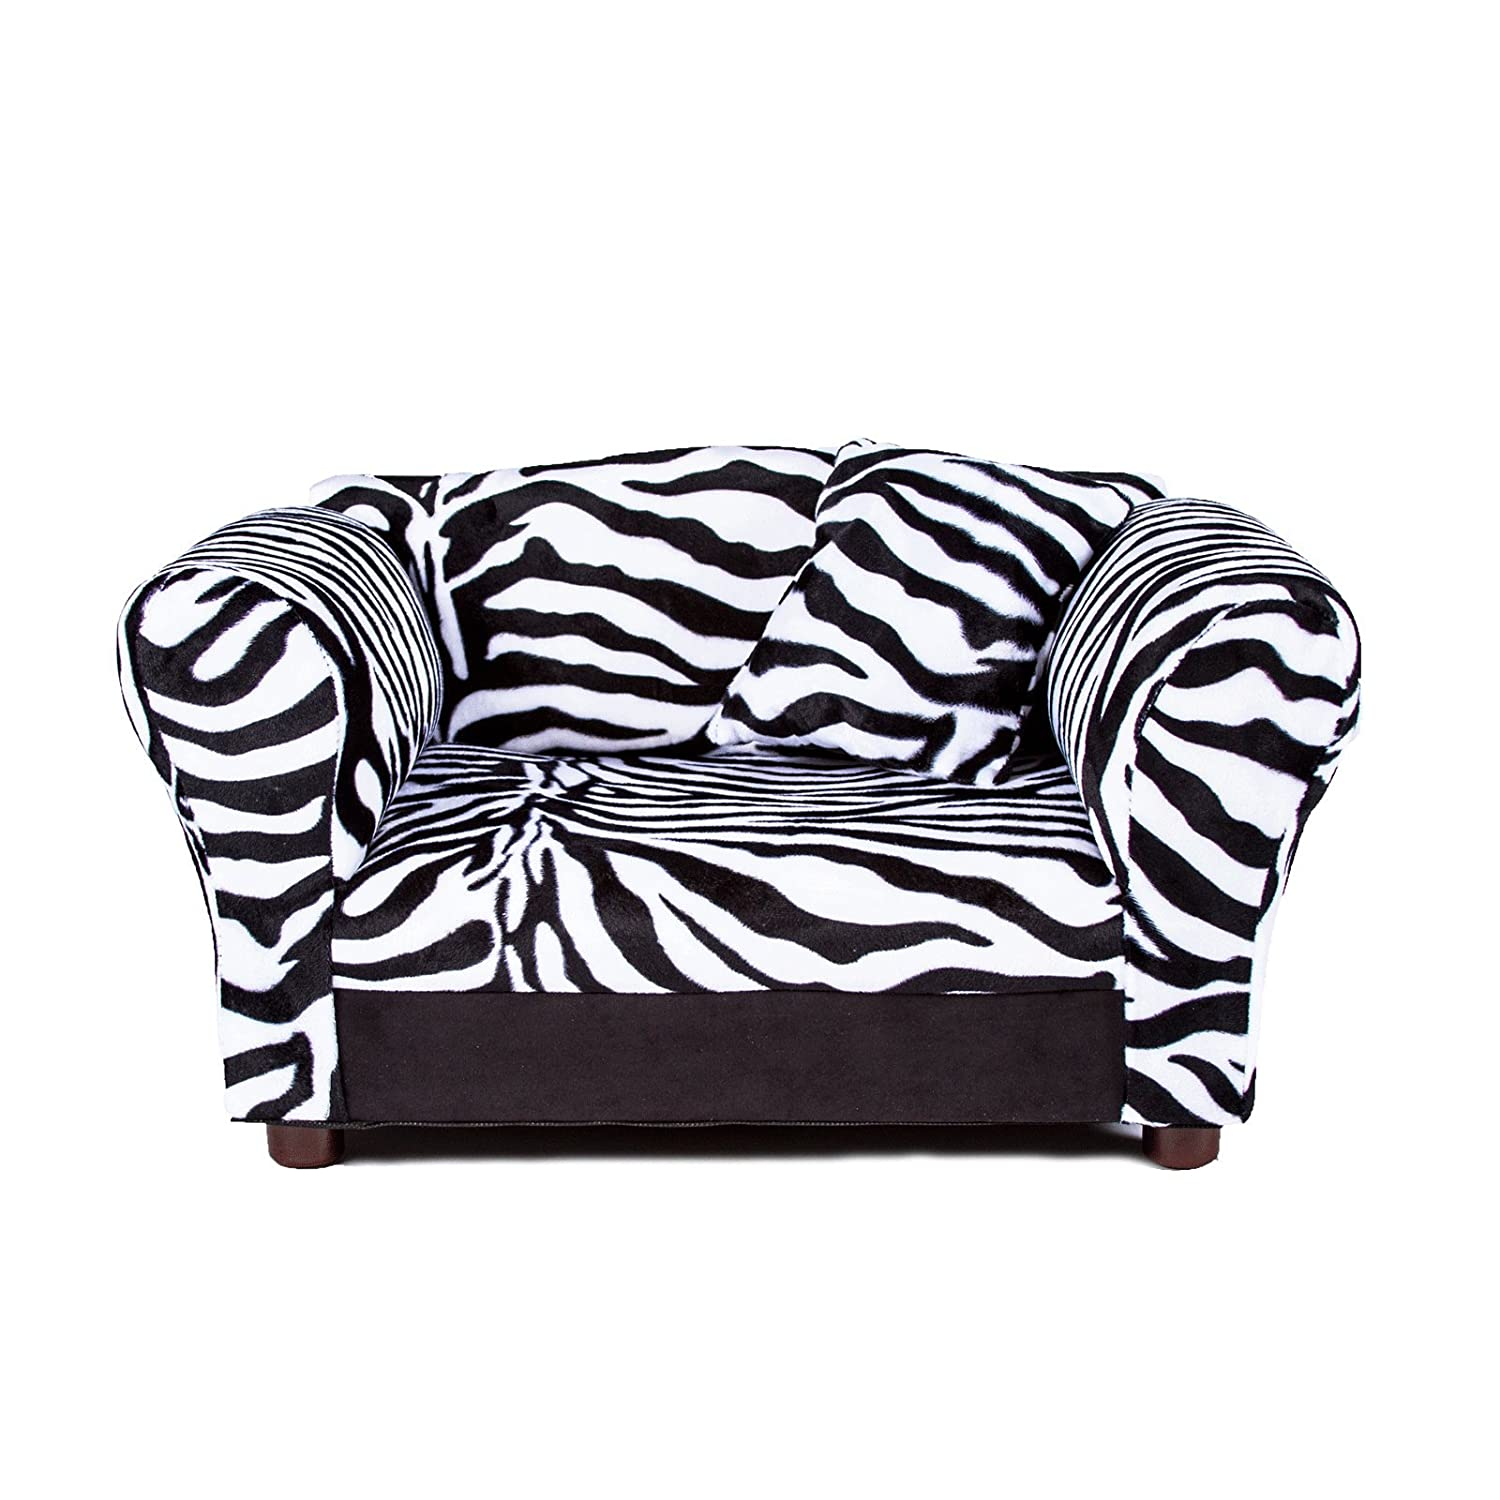 Amazon Mini Sofa Zebra Pet bed Zebra Print Dog Bed Pet